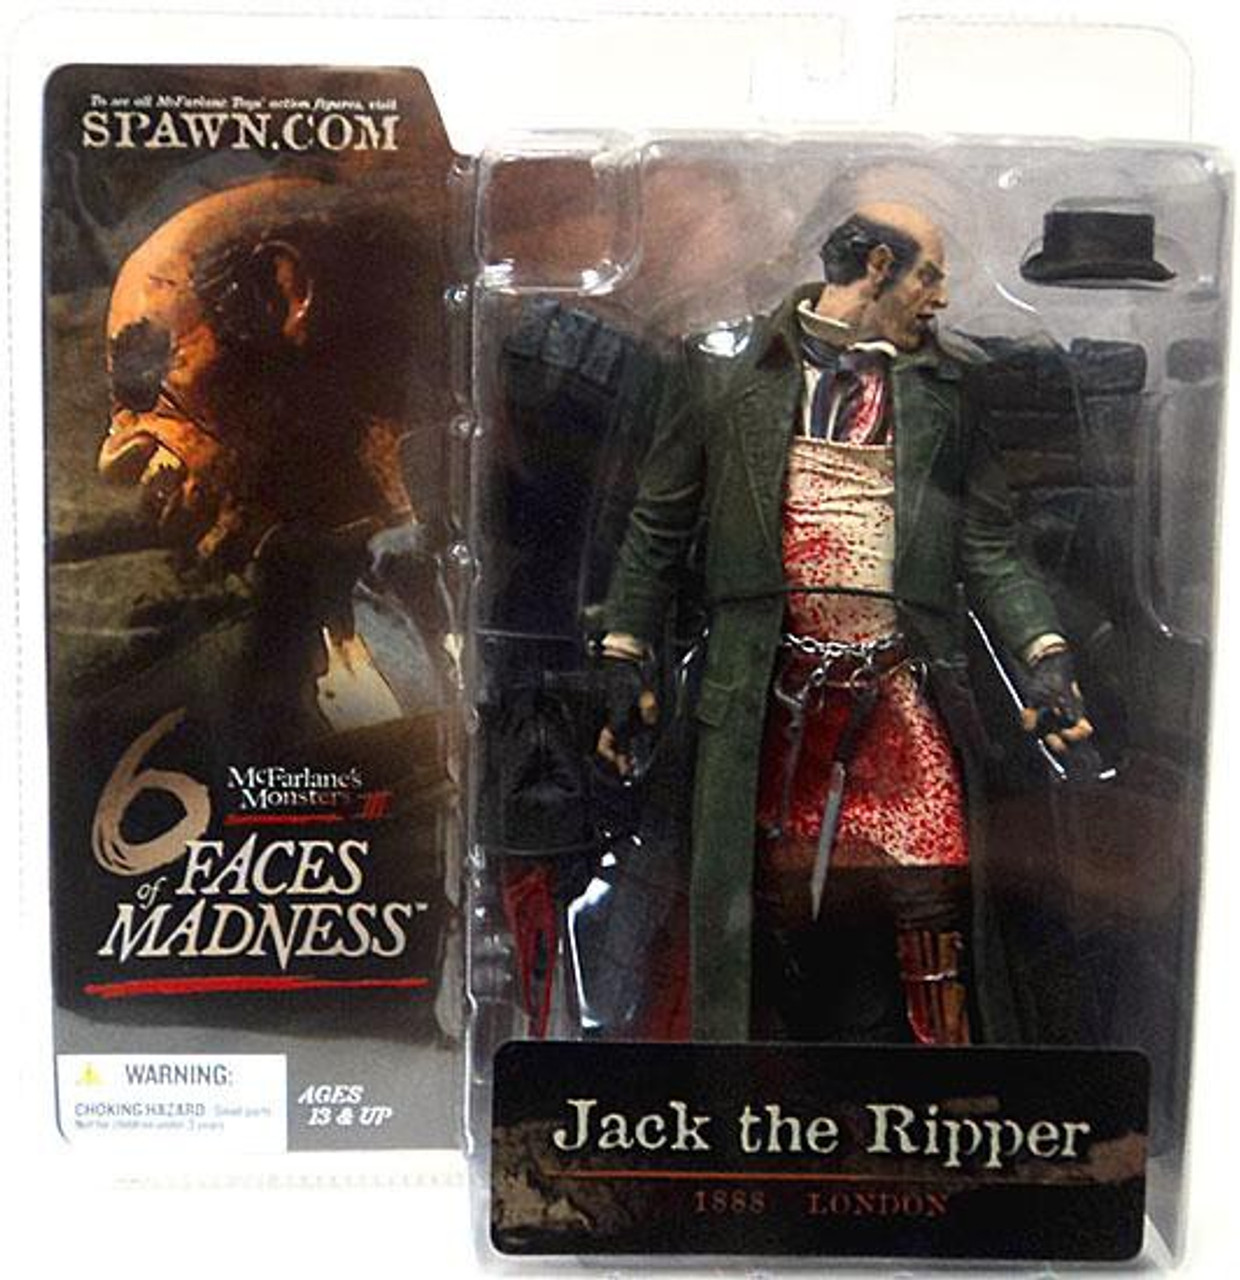 McFarlane Toys McFarlane's Monsters 6 Faces of Madness Jack the Ripper Action Figure